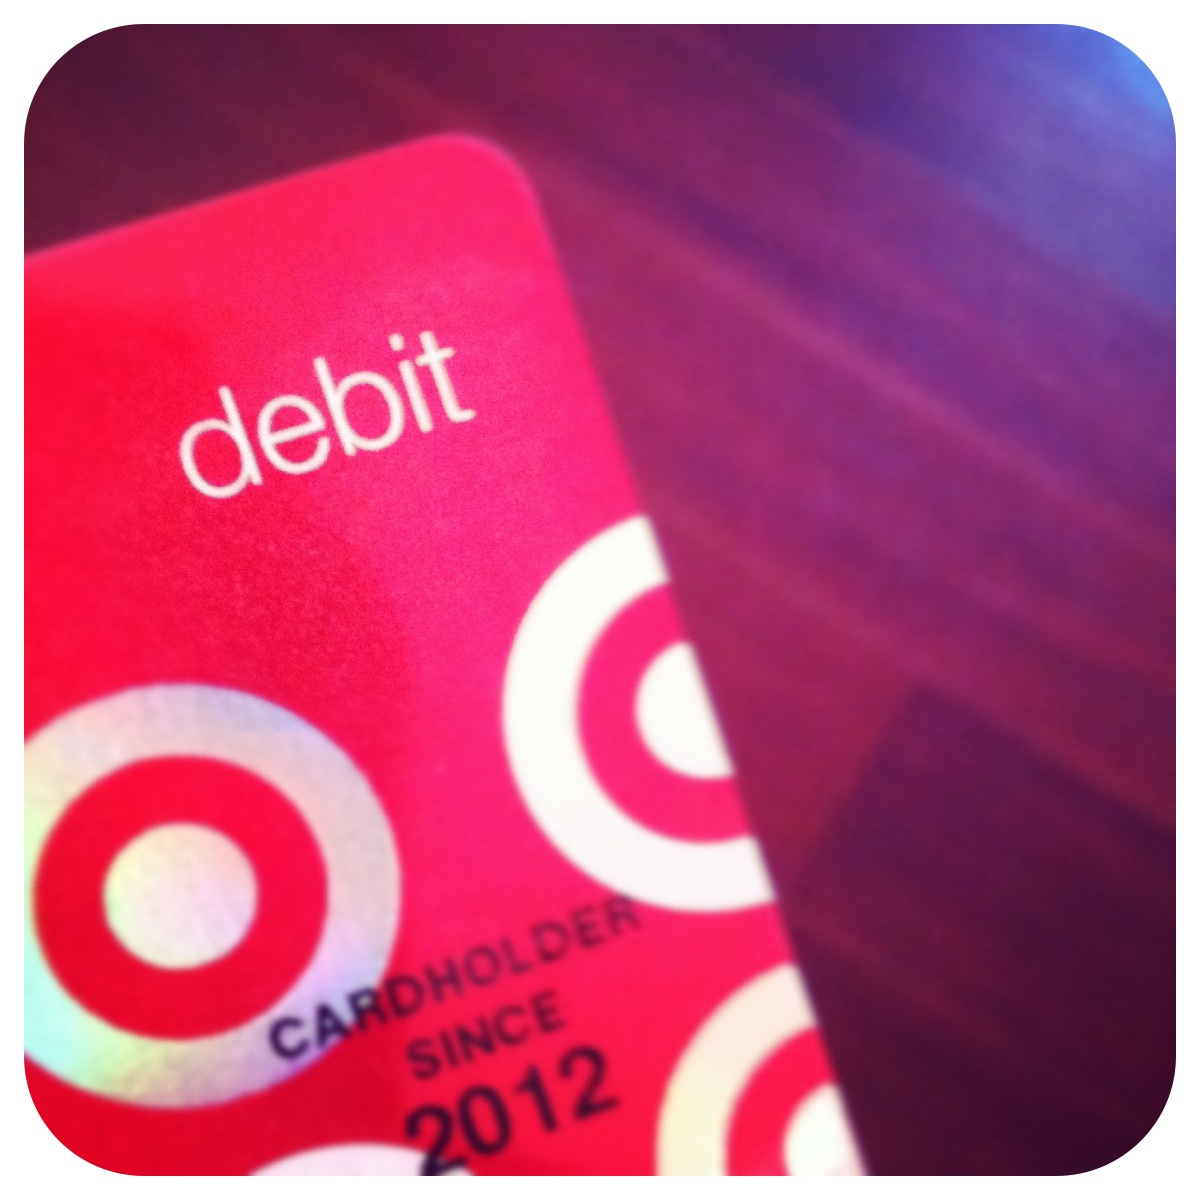 Sam s club credit card payment - Target Red Card Debit Information